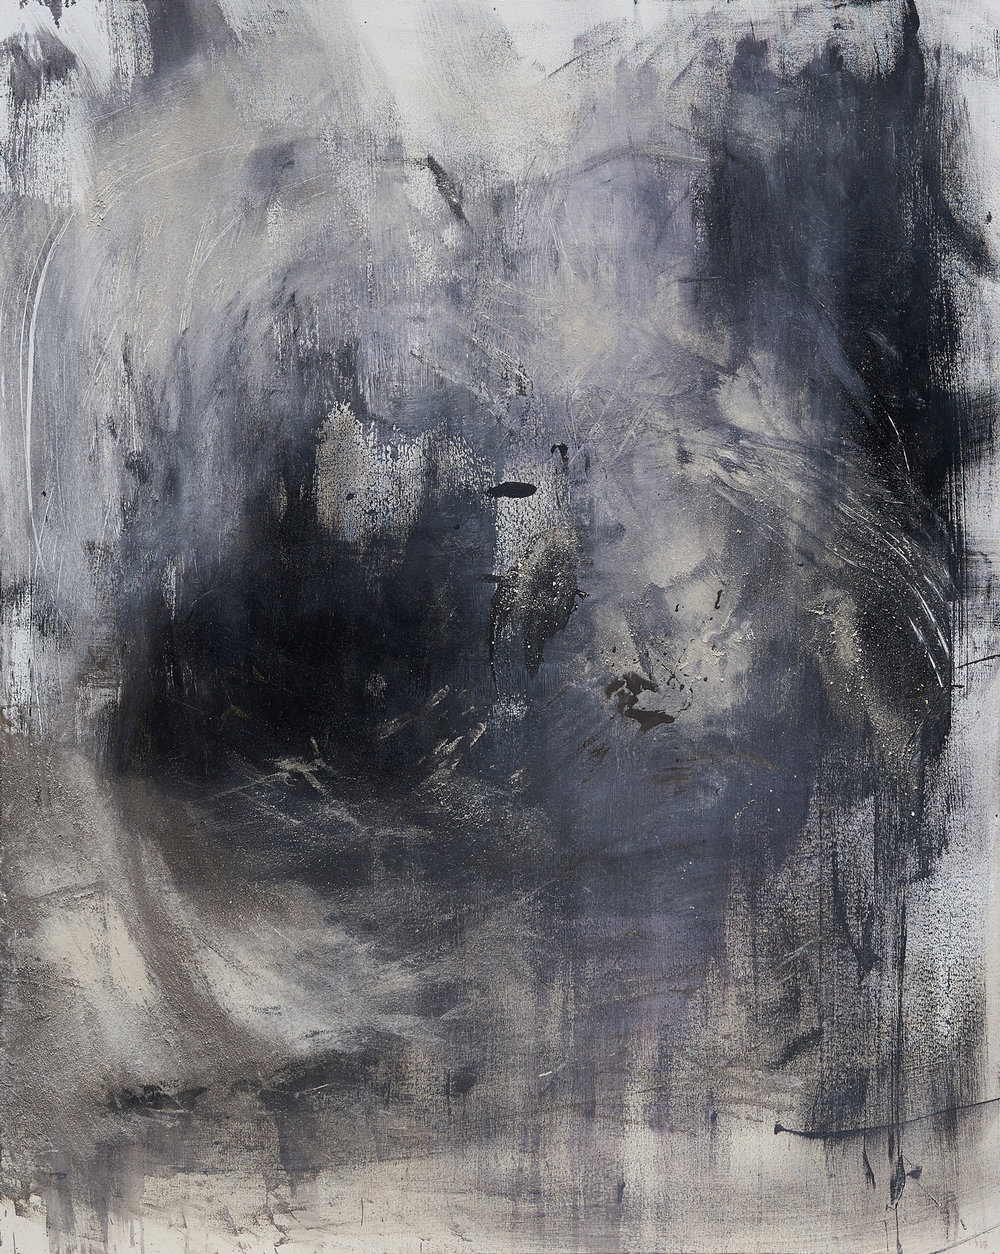 Ceremony (Rufus),   Dog ashes, Oil and Acrylic Paint on Canvas, 5x4 feet, 2015